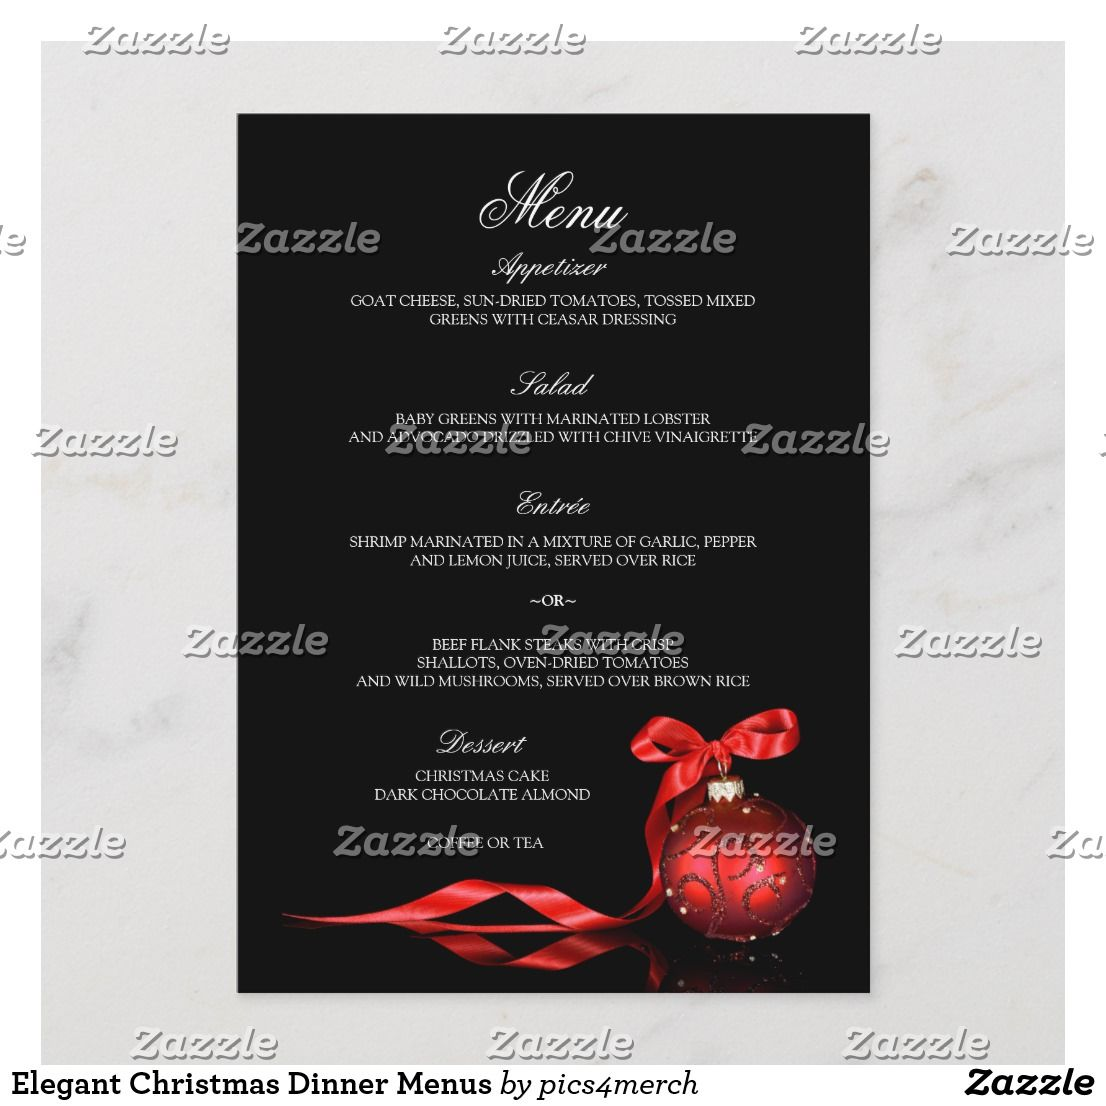 Elegant Corporate Business Christmas Dinner Menus An Menu Card Template Featuring A Red Ornament With Ribbon Against Black